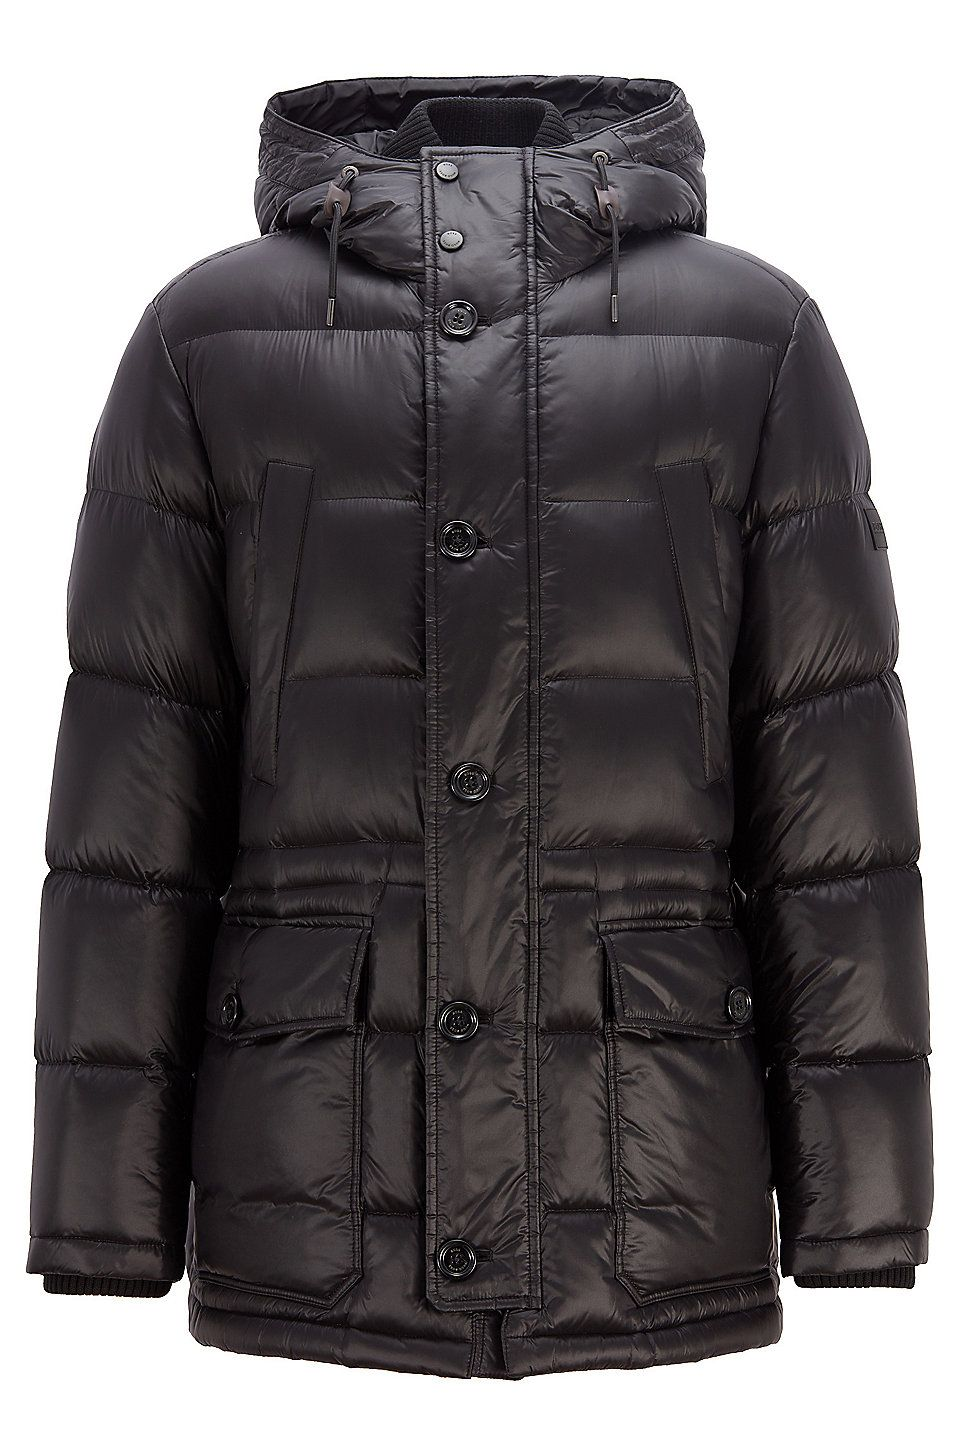 Hugo Boss Hooded Down Filled Parka Jacket With Ribbed Cuffs Black Down Jackets From Boss For Men In The Official Hugo Boss Online Parka Jacket Jackets Parka [ 1456 x 960 Pixel ]